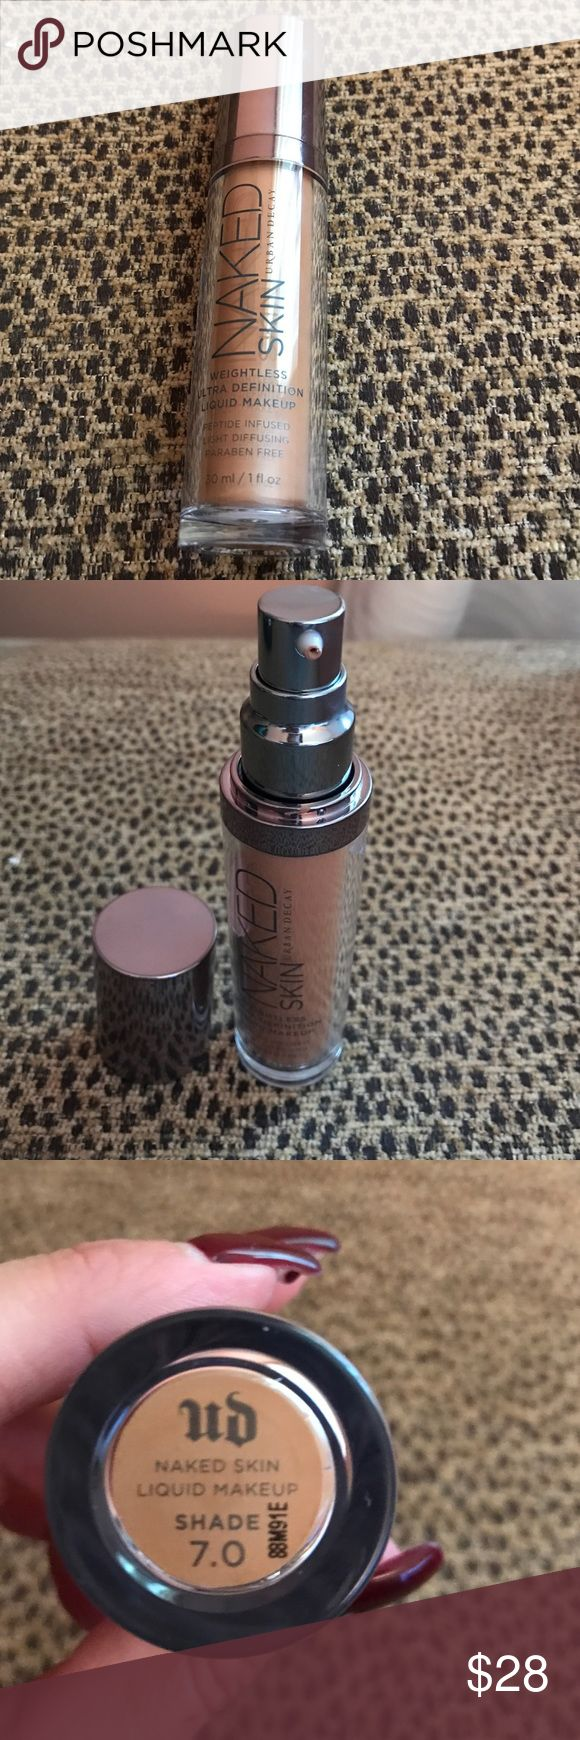 Urban Decay Naked Skin Foundation Urban Decay Naked Skin Foundation. Color is 7.0. It's only been used less than 5 times. Urban Decay Makeup Foundation